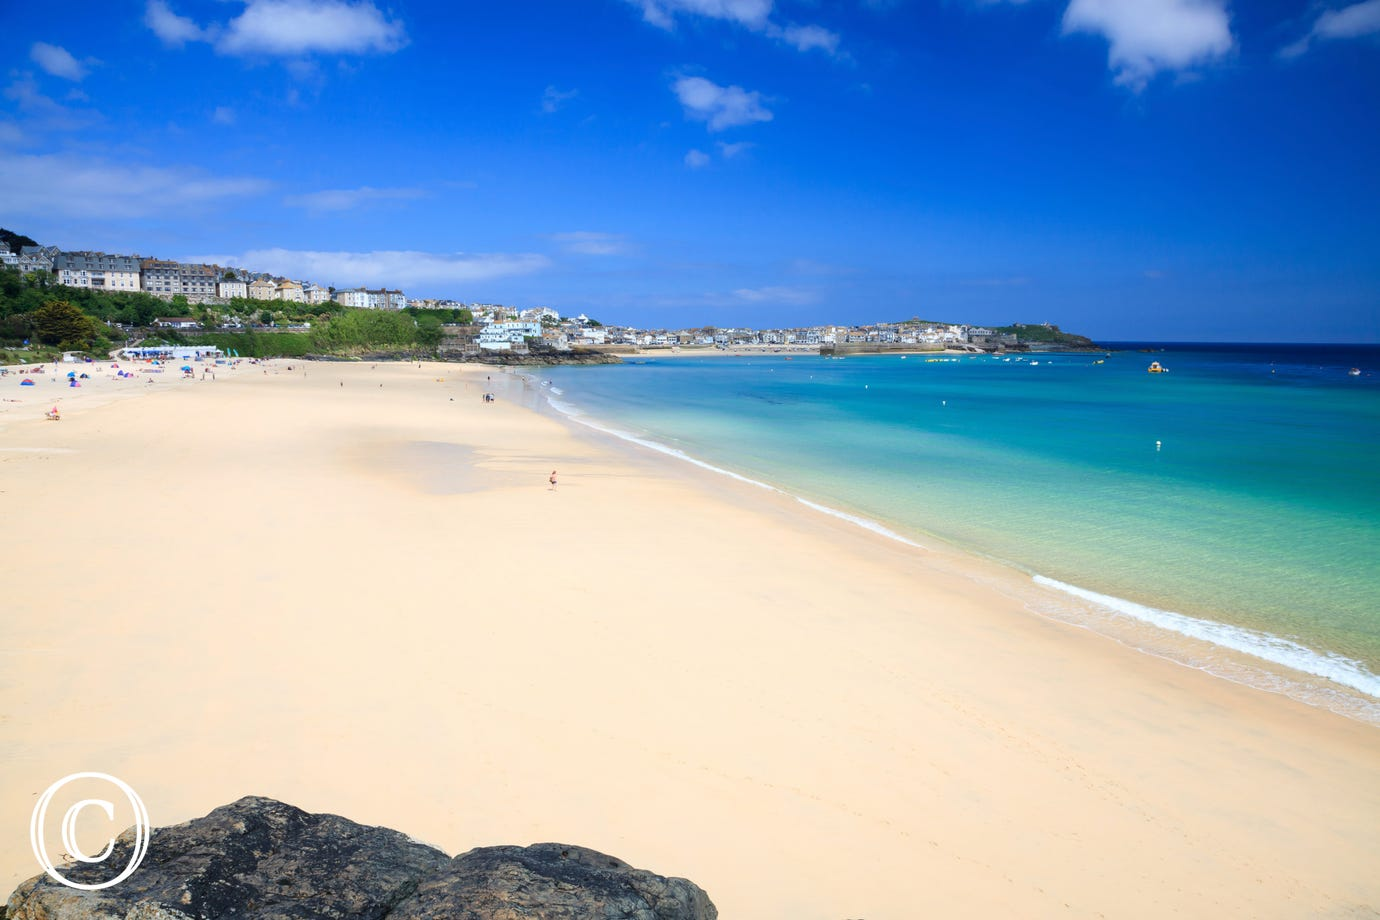 Just a 6 minute walk to Porthminster beach